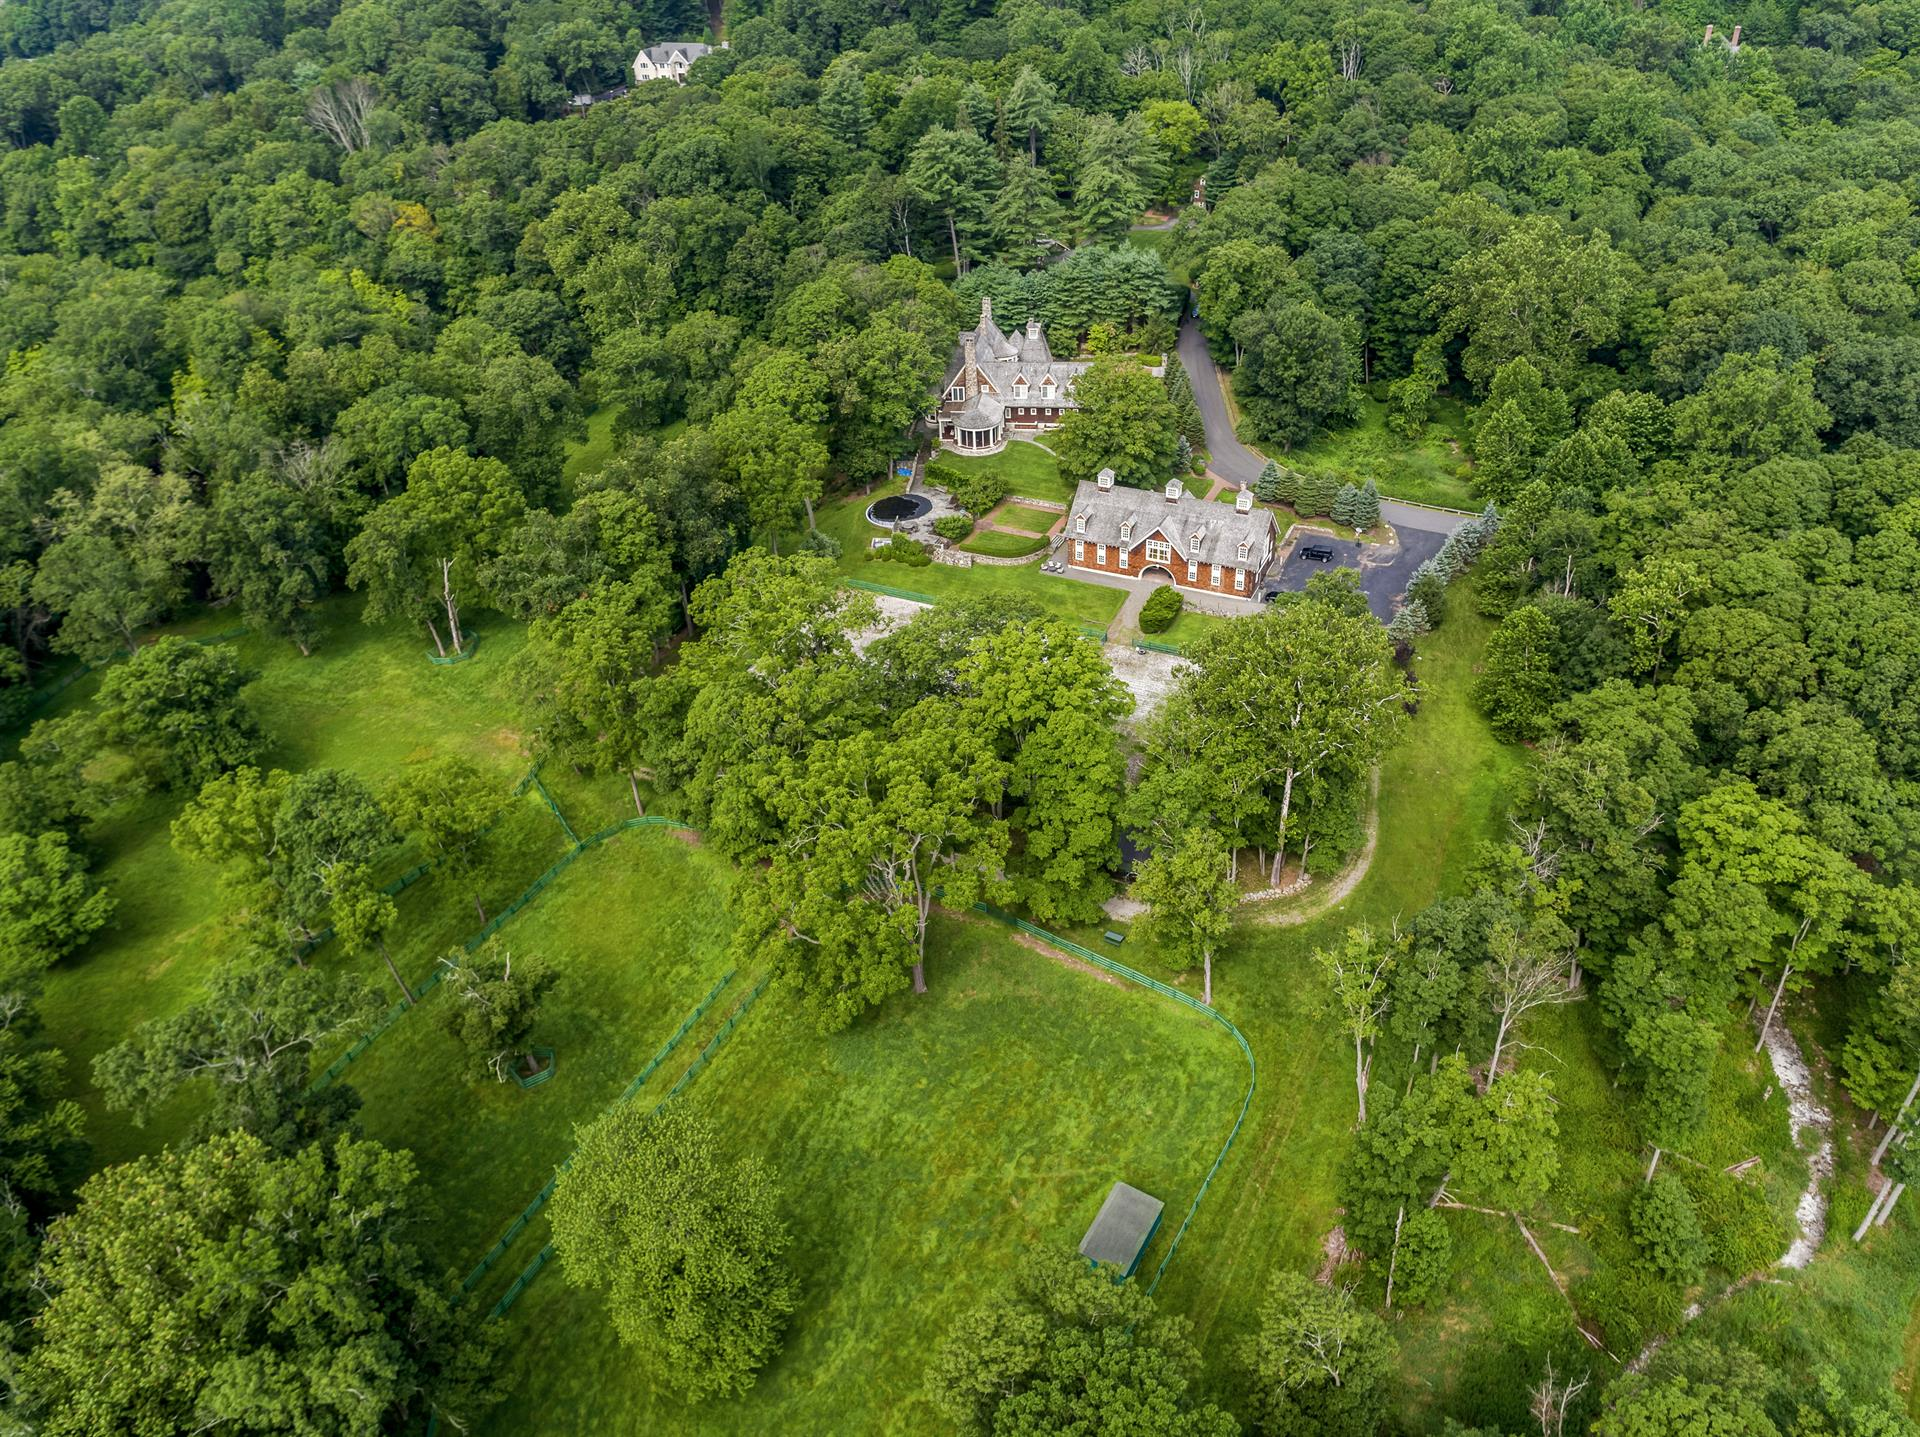 23 Acre Riverfront Equestrian Estate A Luxury Home For